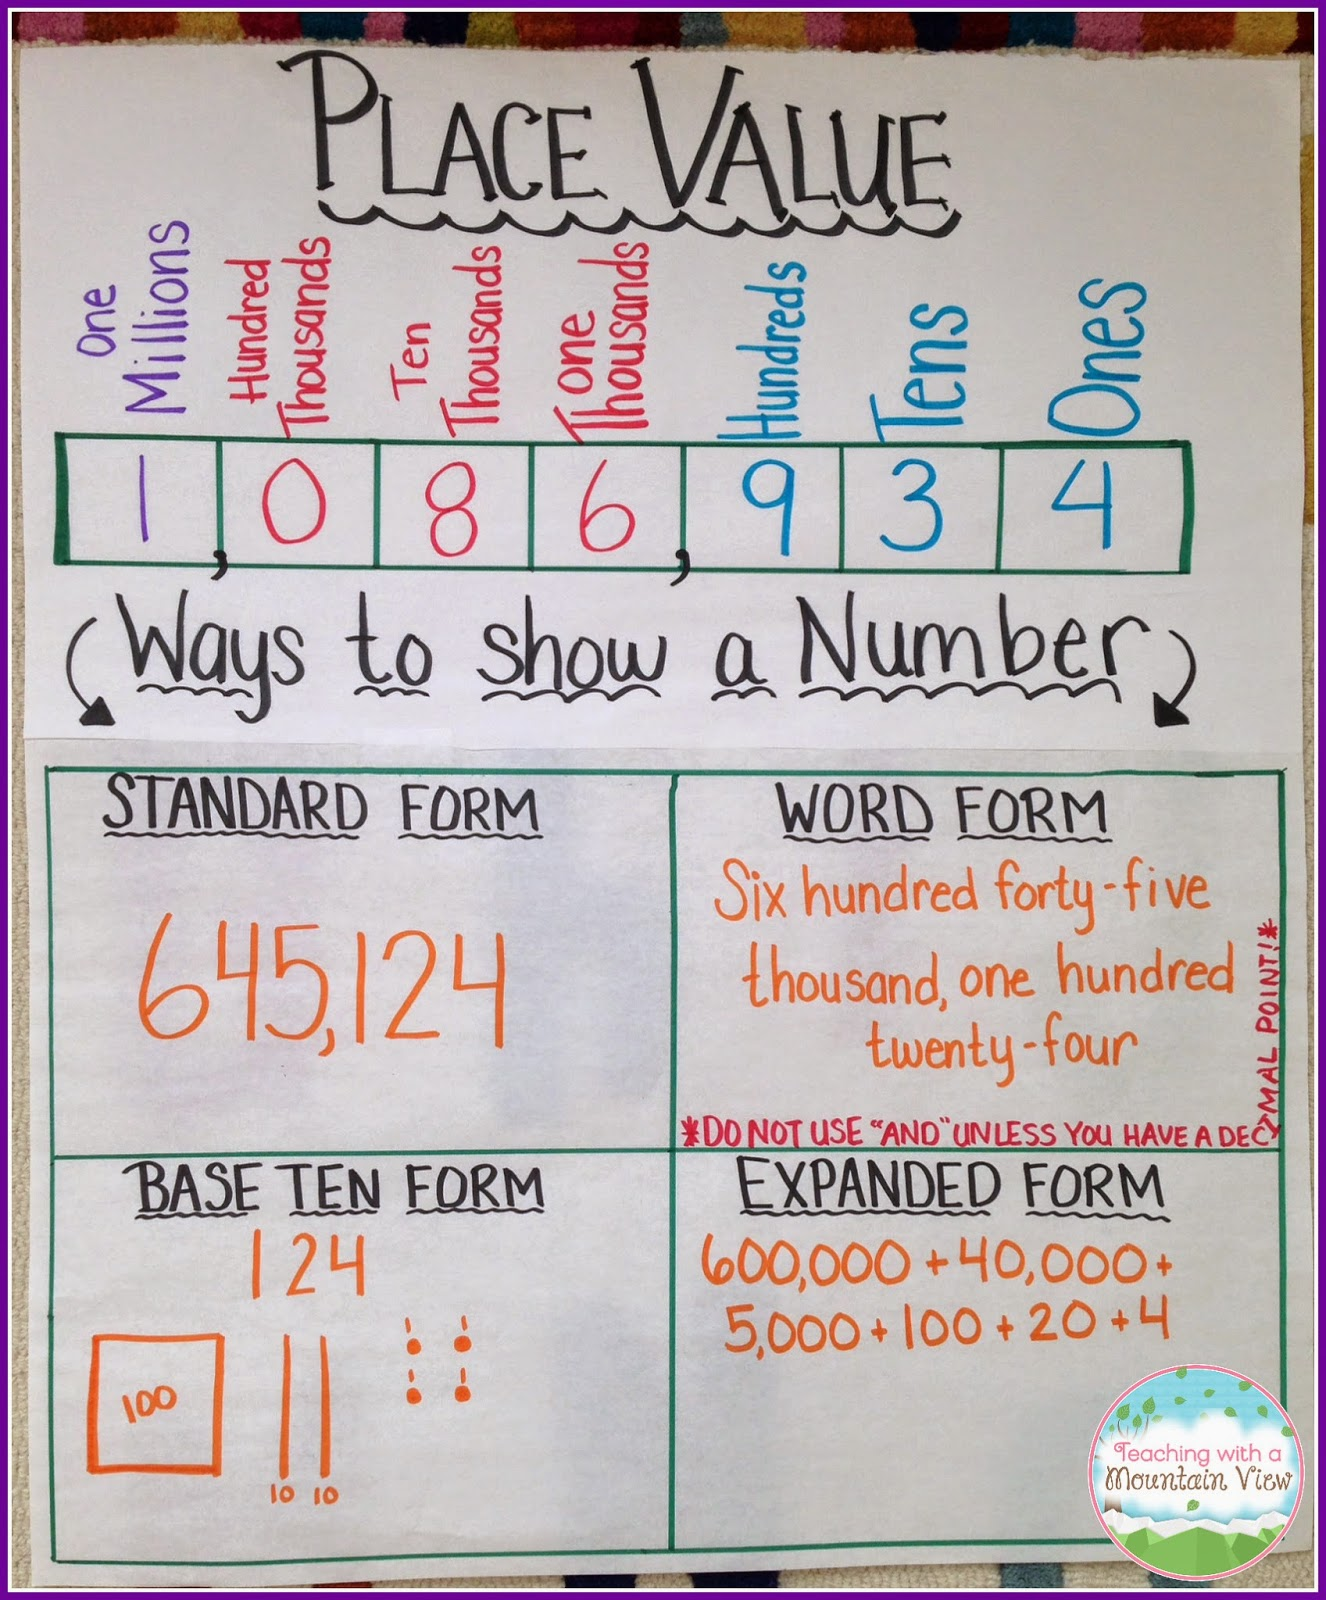 Building Place Value Understanding In The 3rd Grade